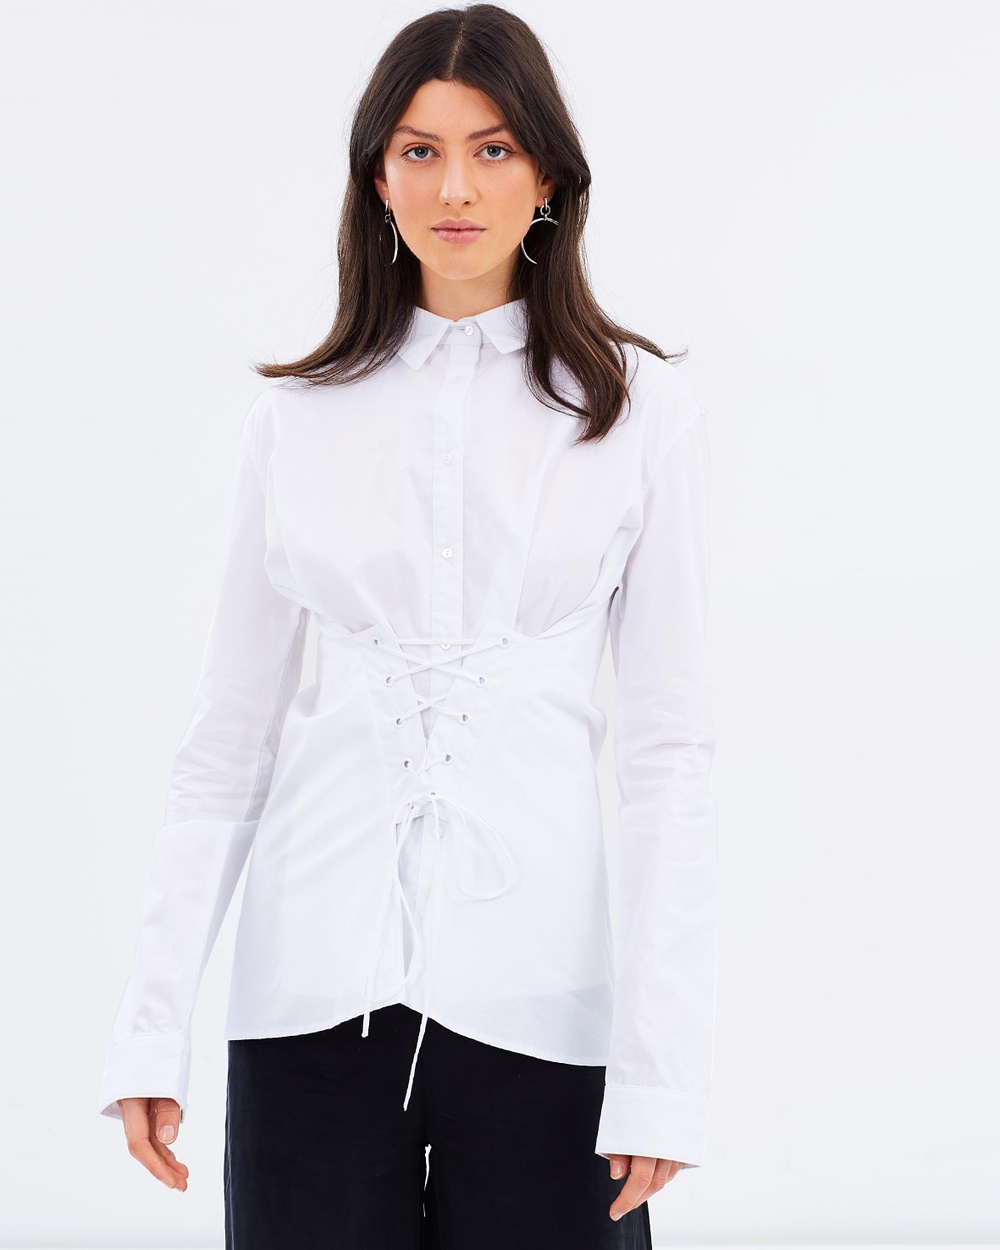 Marle Tod Shirt Tops White Tod Shirt